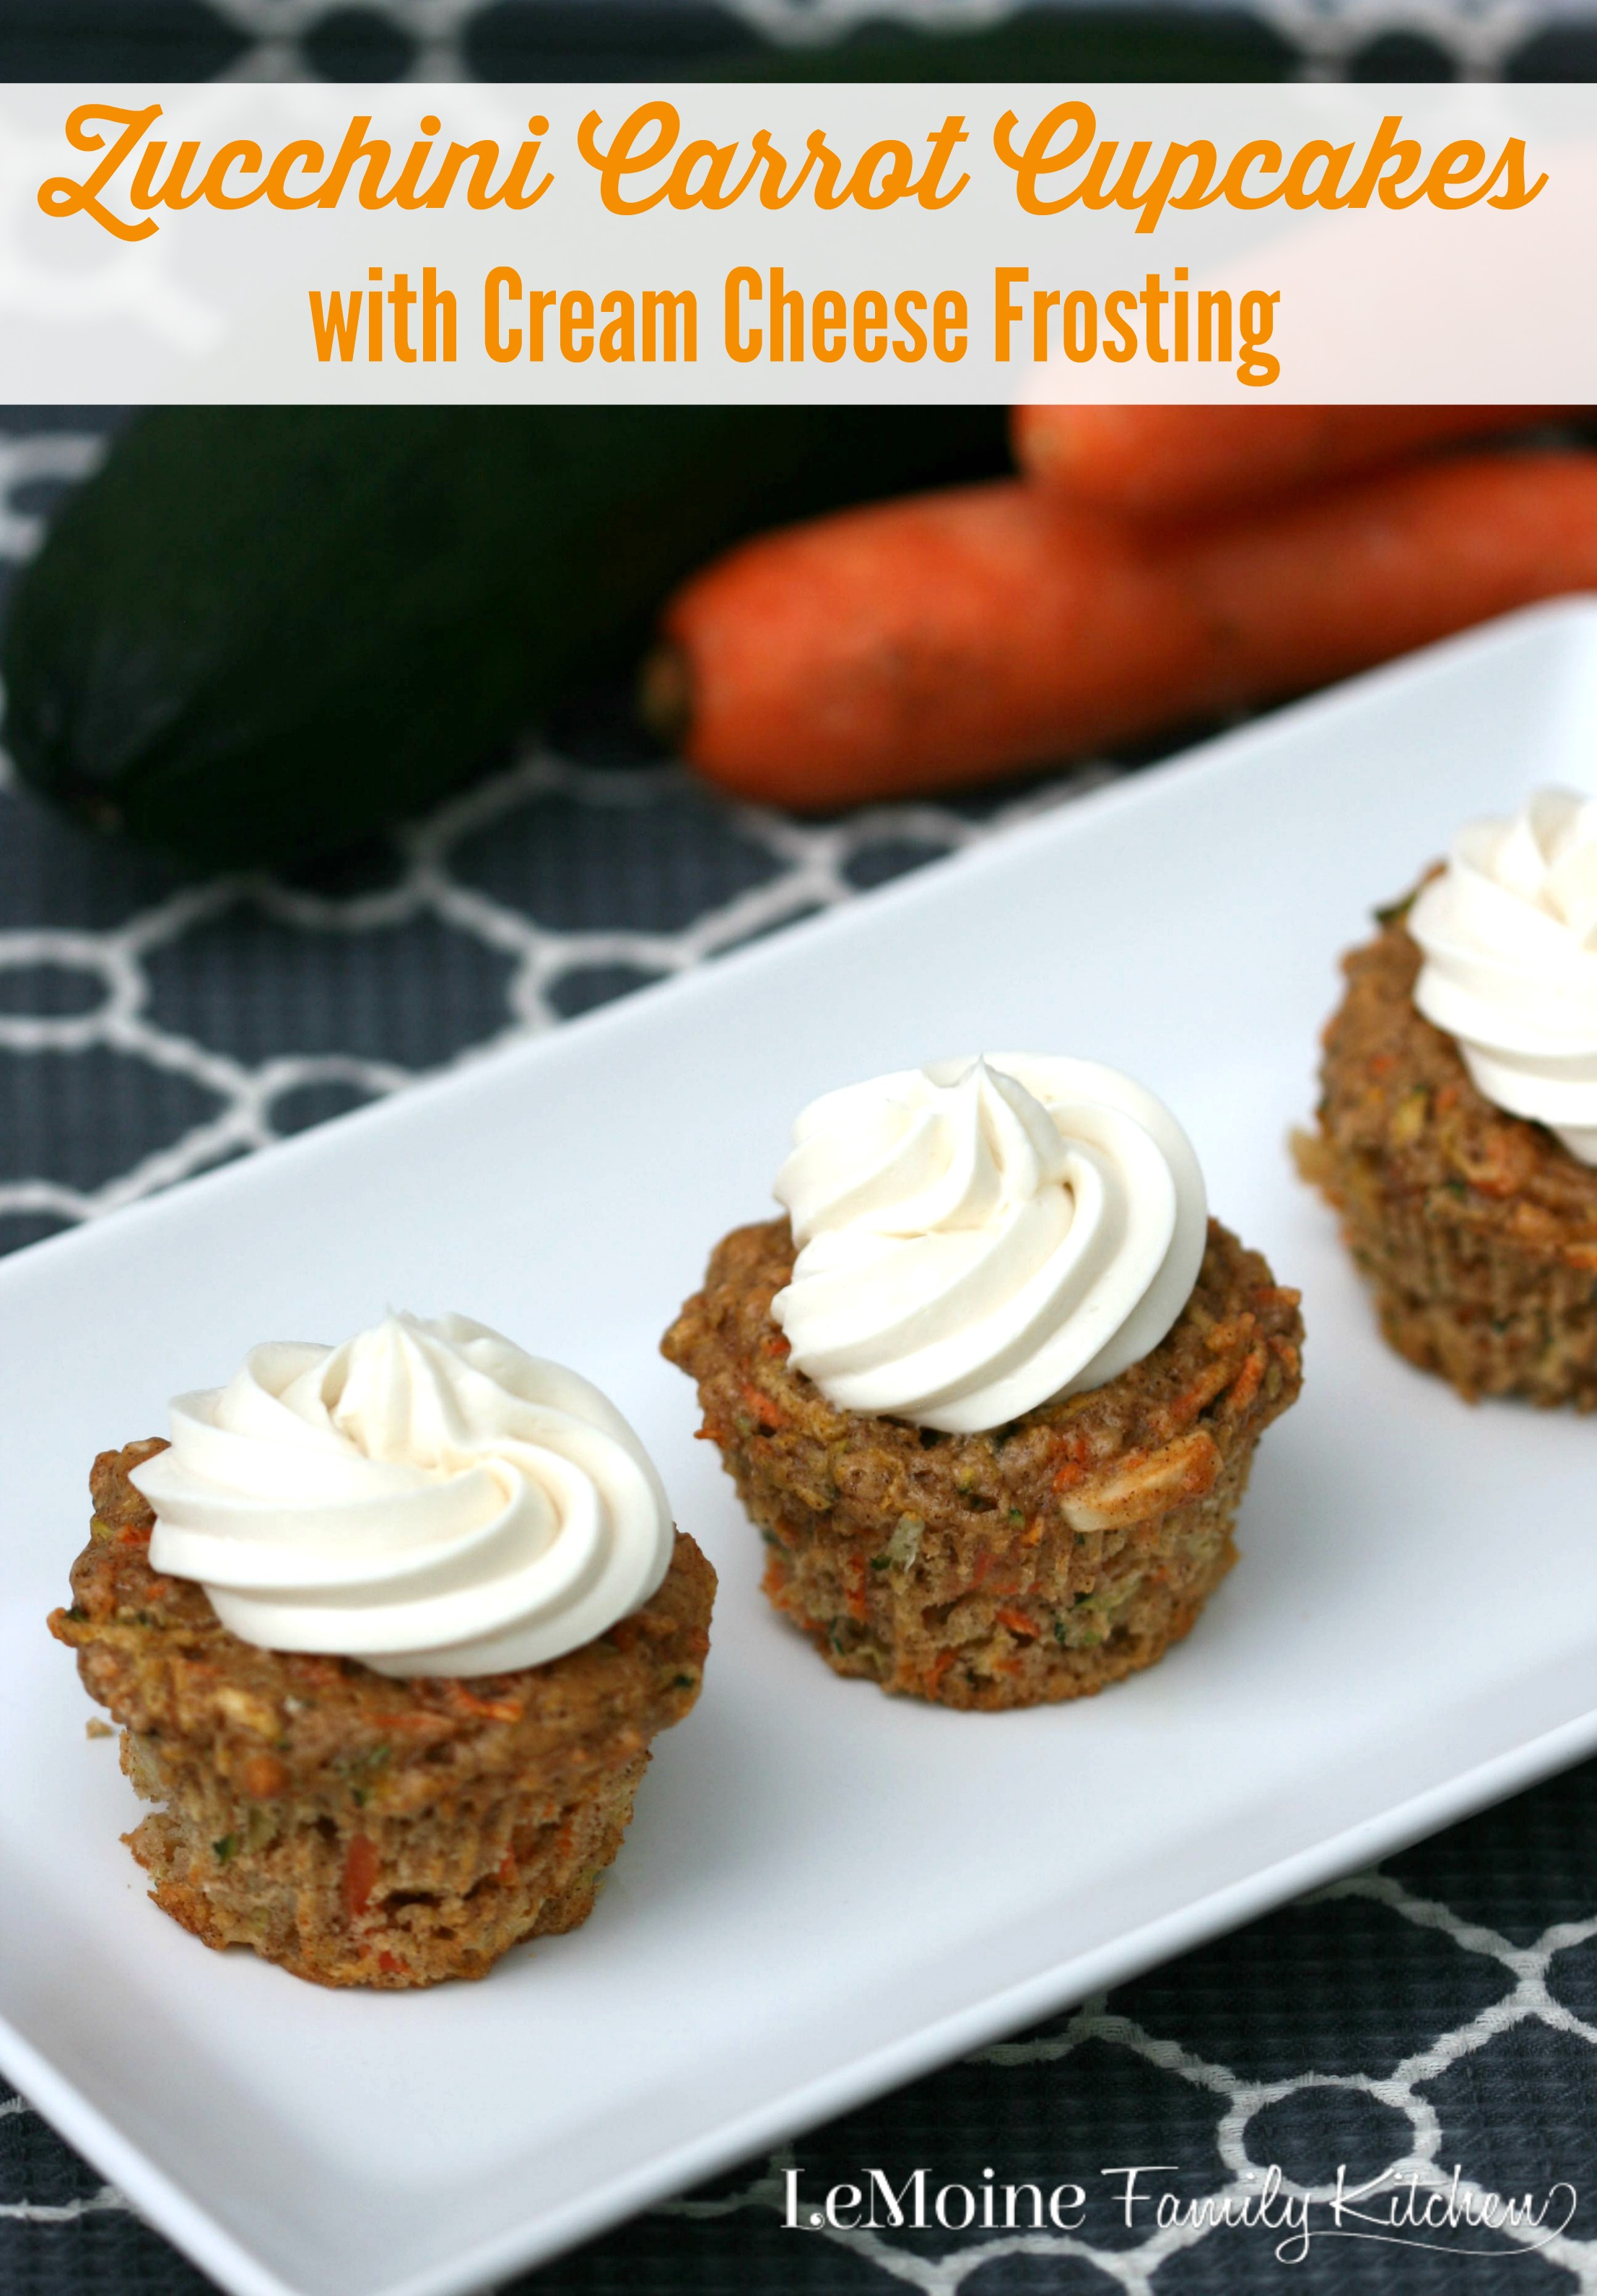 Zucchini Carrot Cupcakes with Cream Cheese Frosting